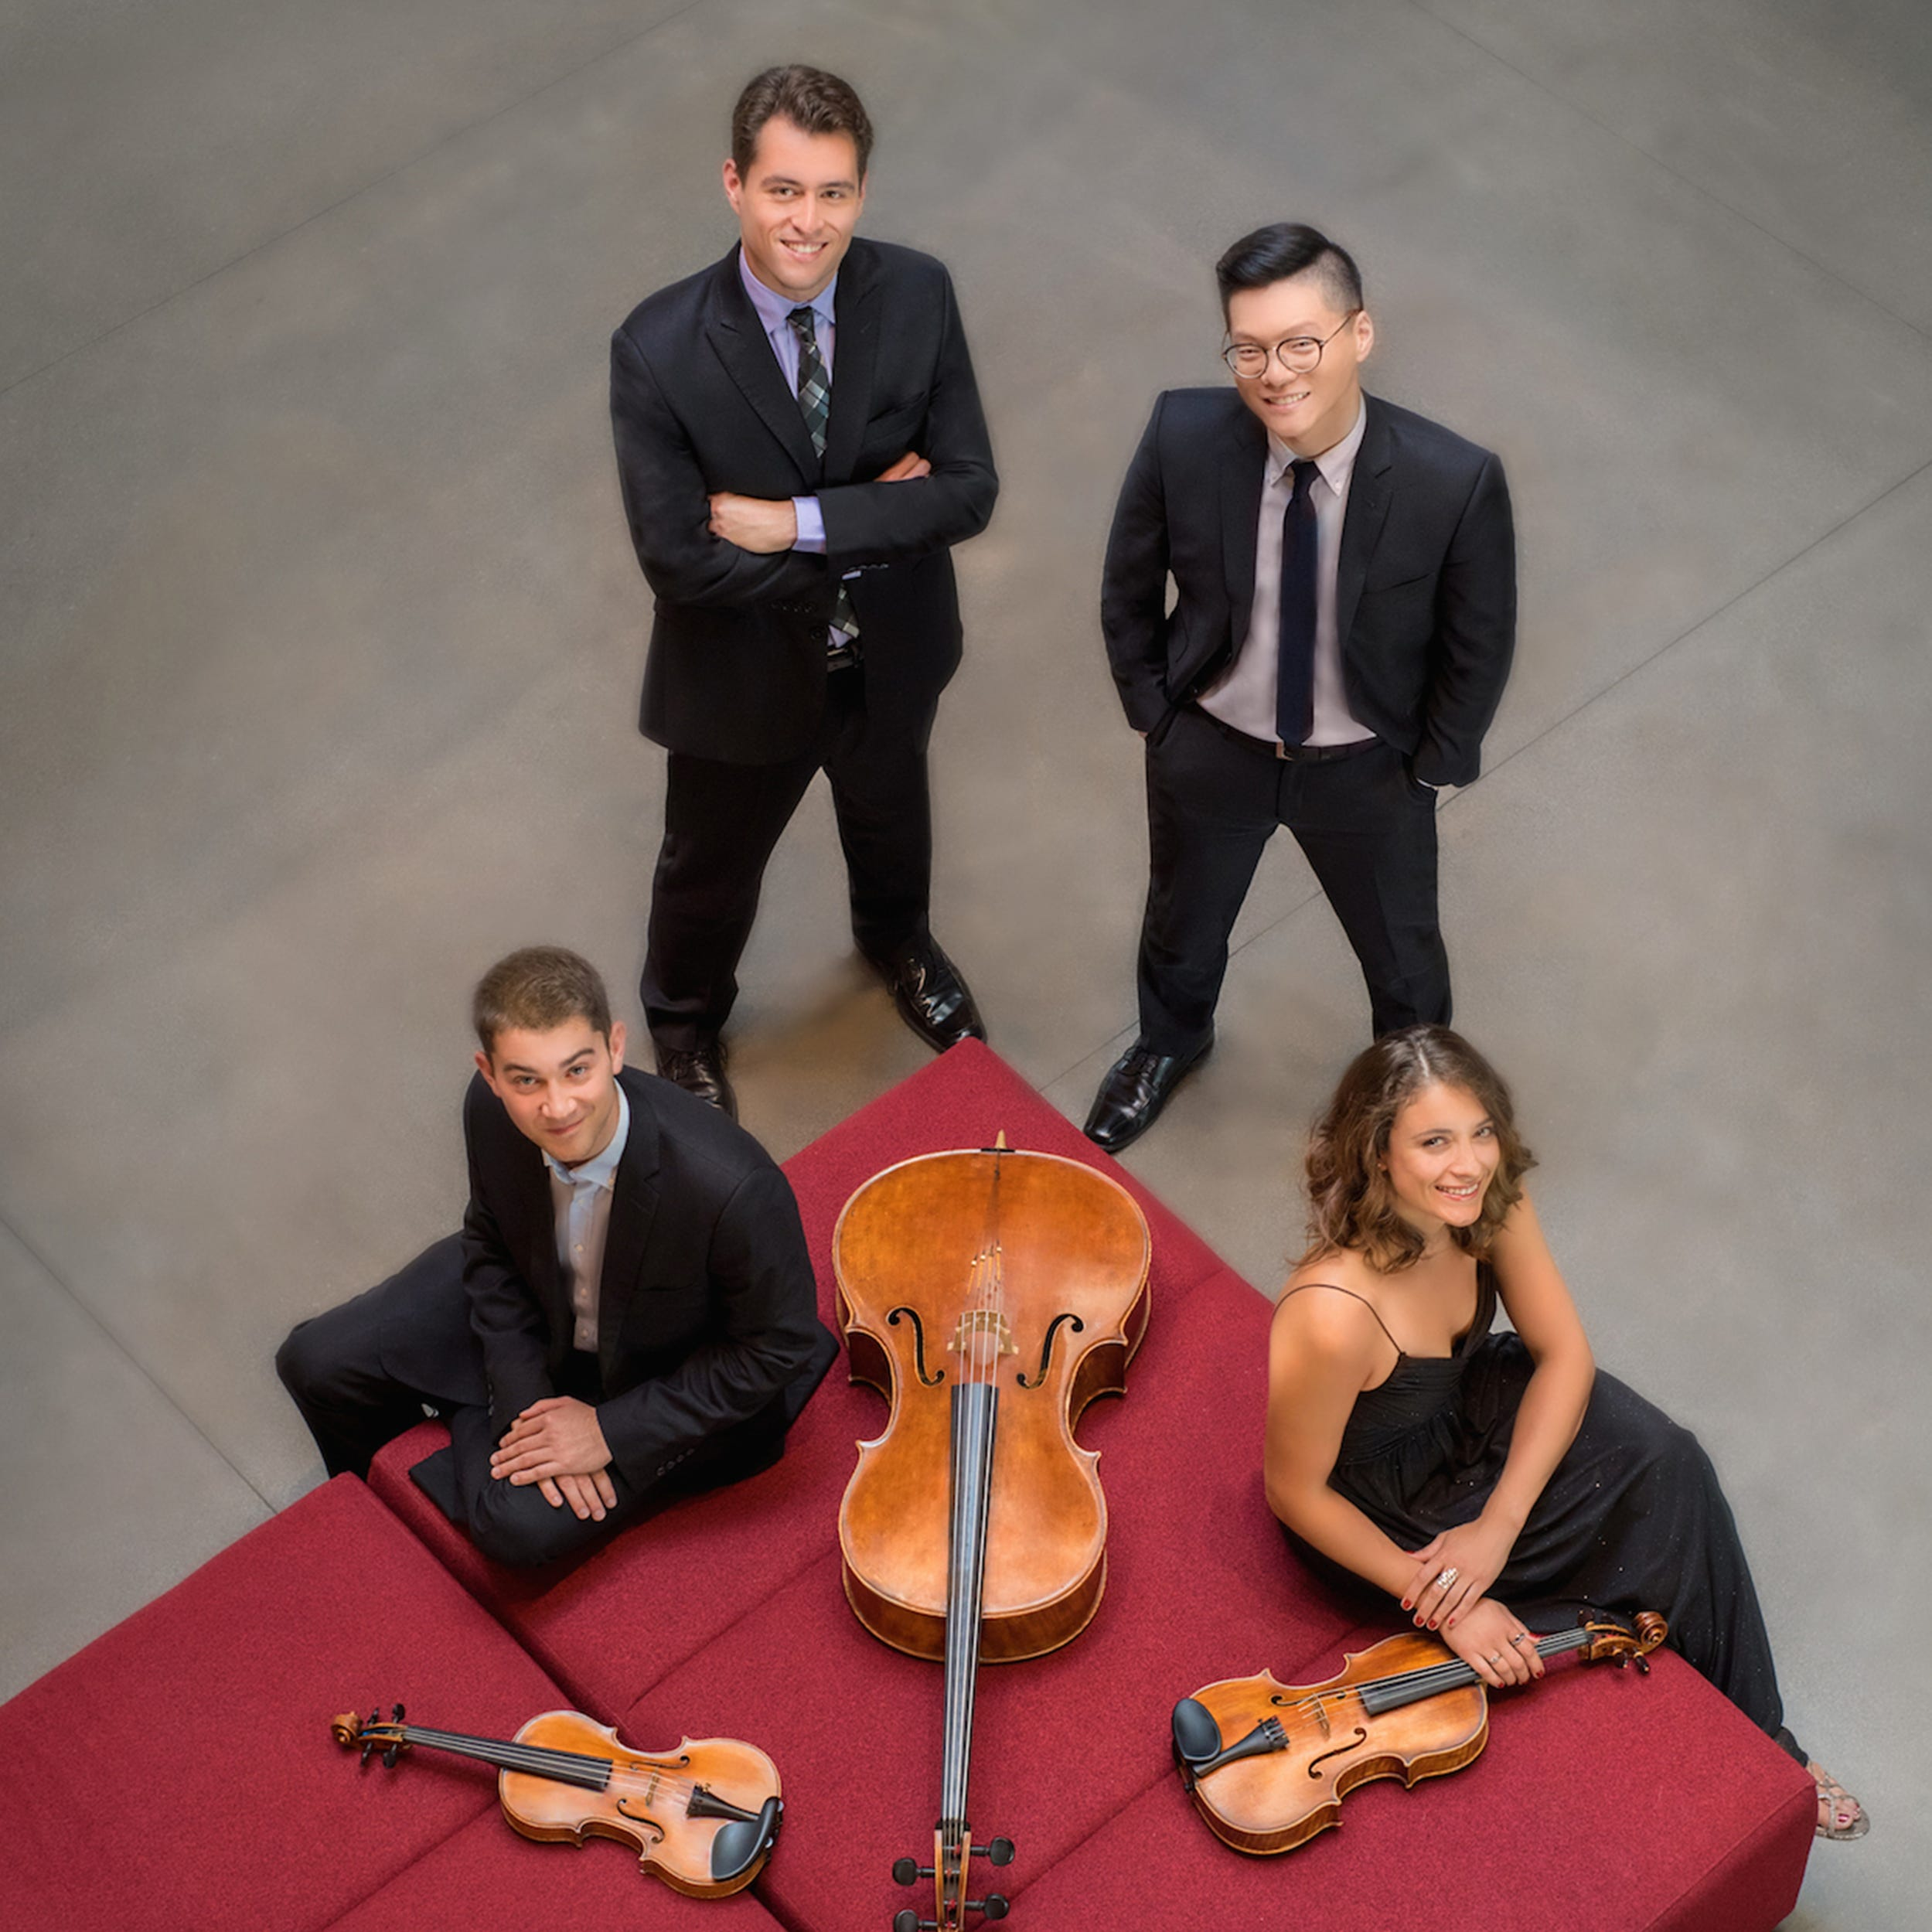 Dover Quartet to open chamber music season